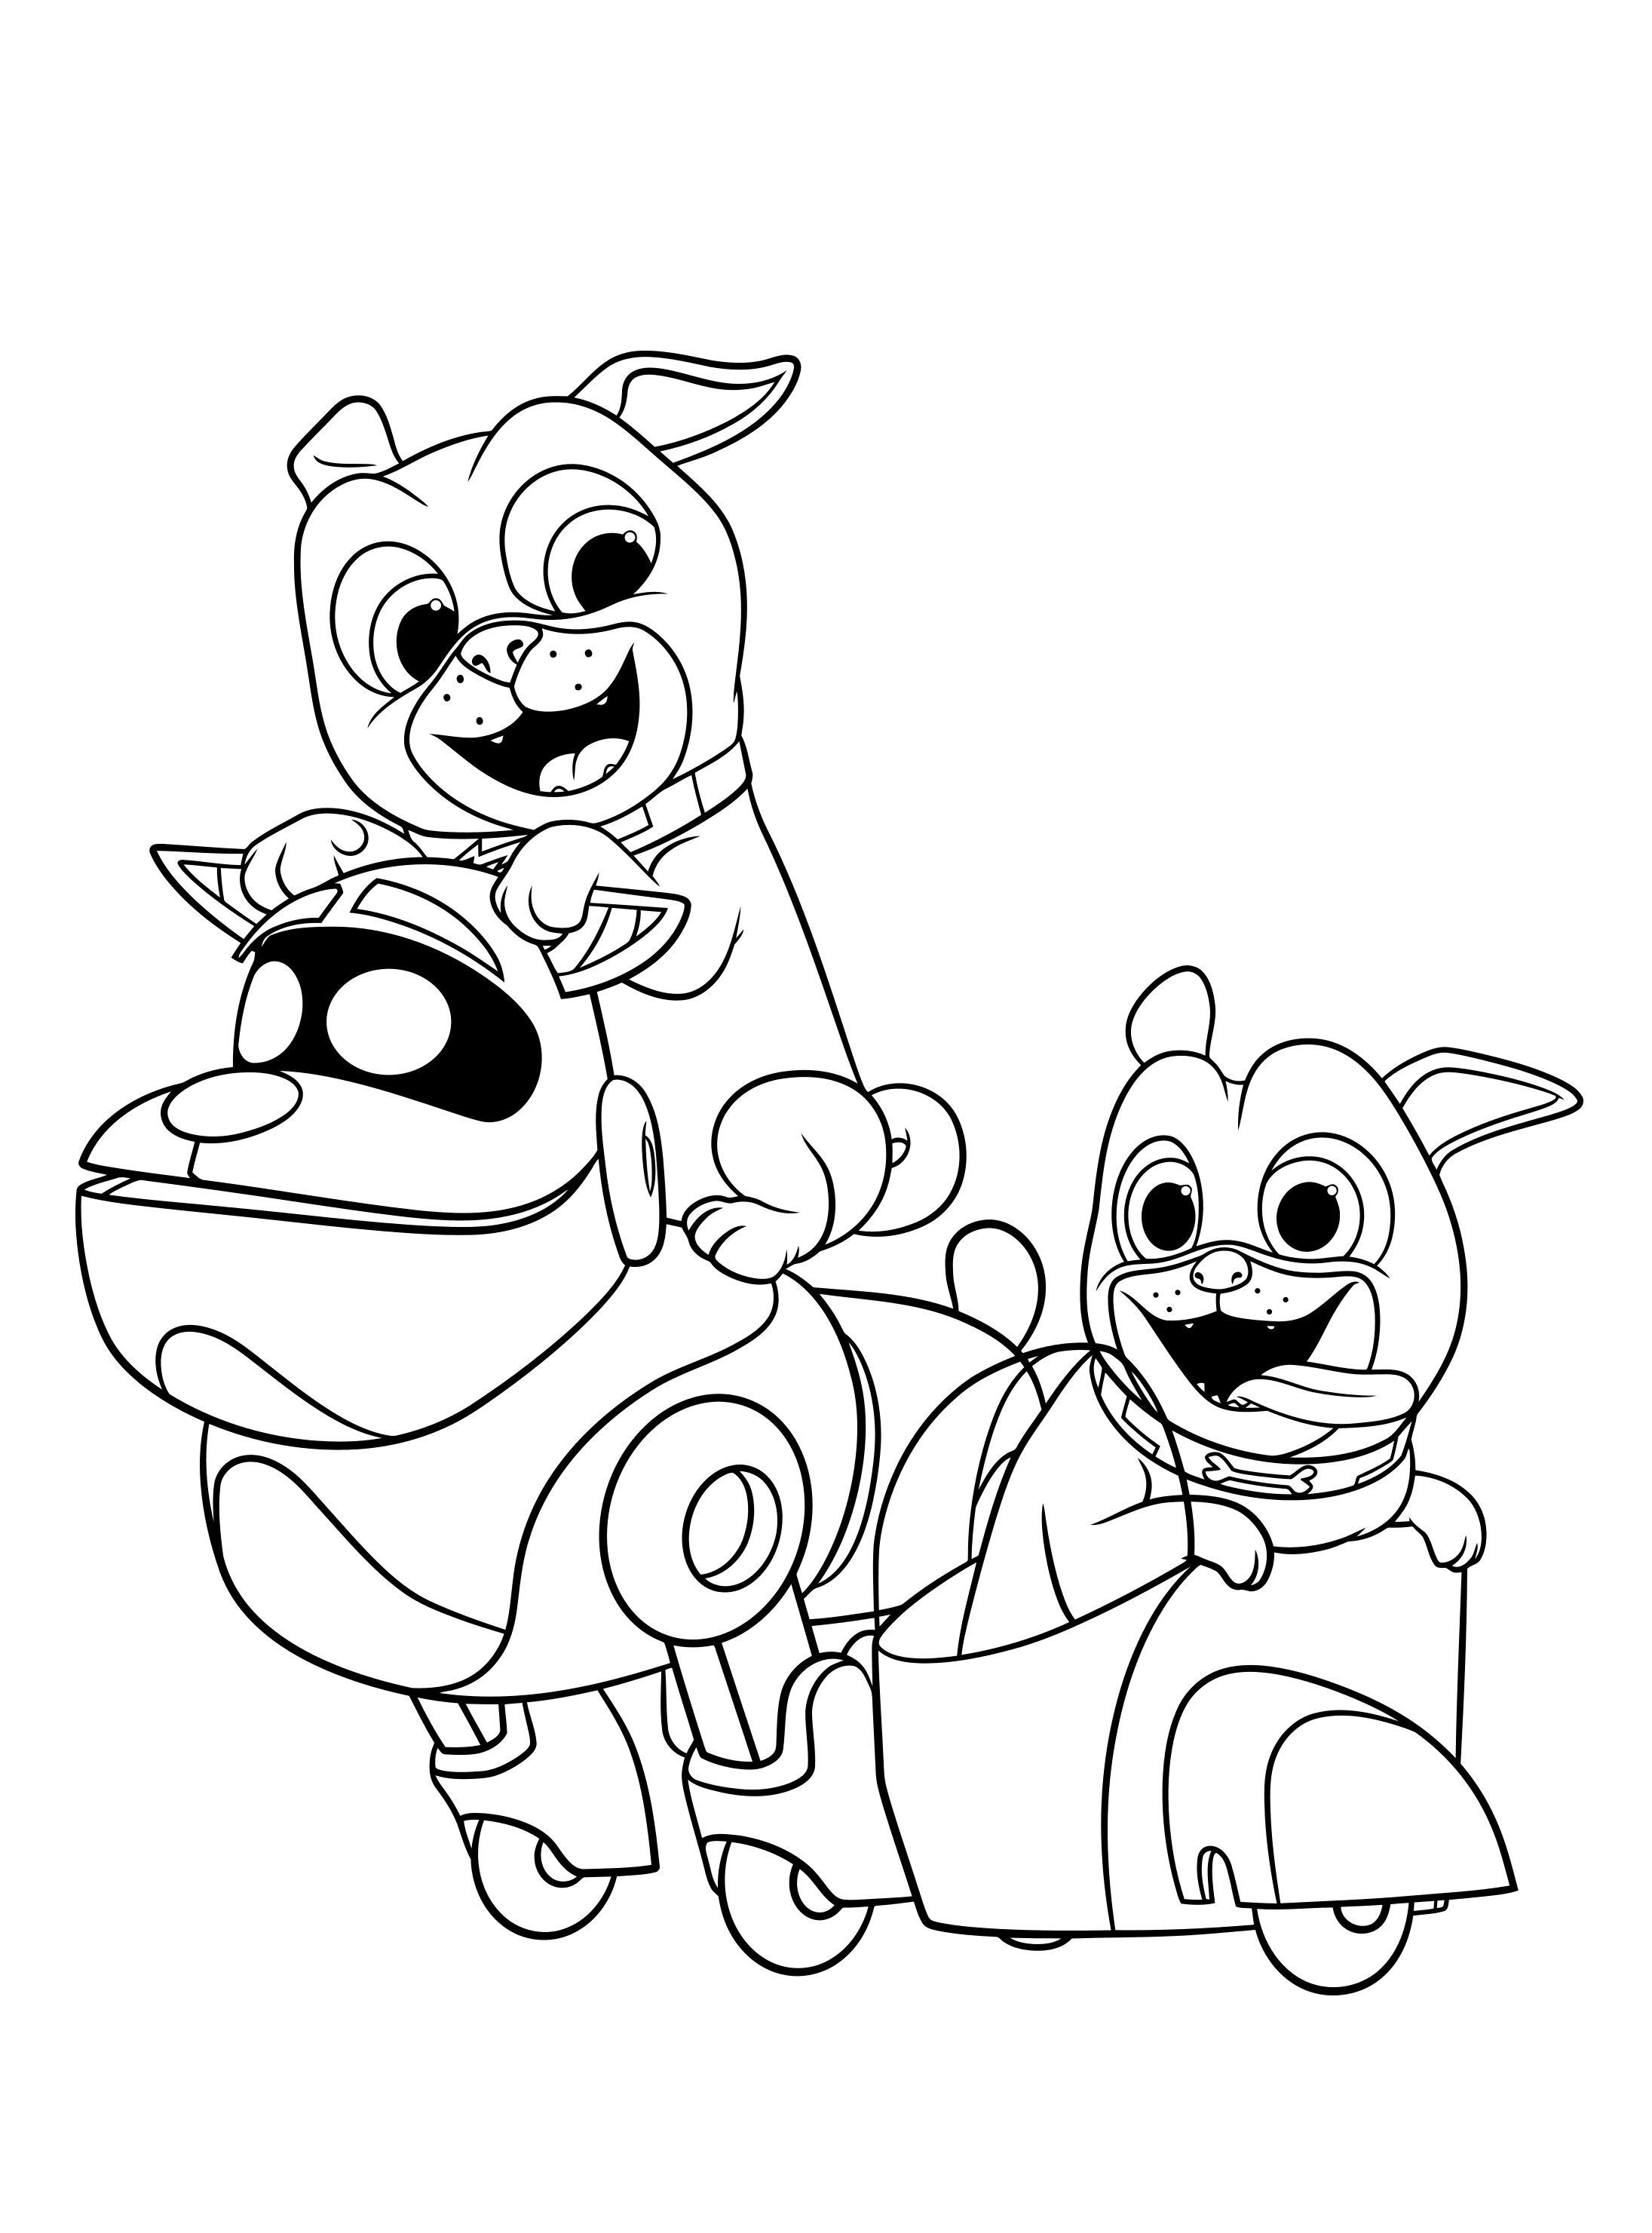 barbie and dog coloring pages barbie pet coloring pages coloring pages to download and dog barbie coloring and pages